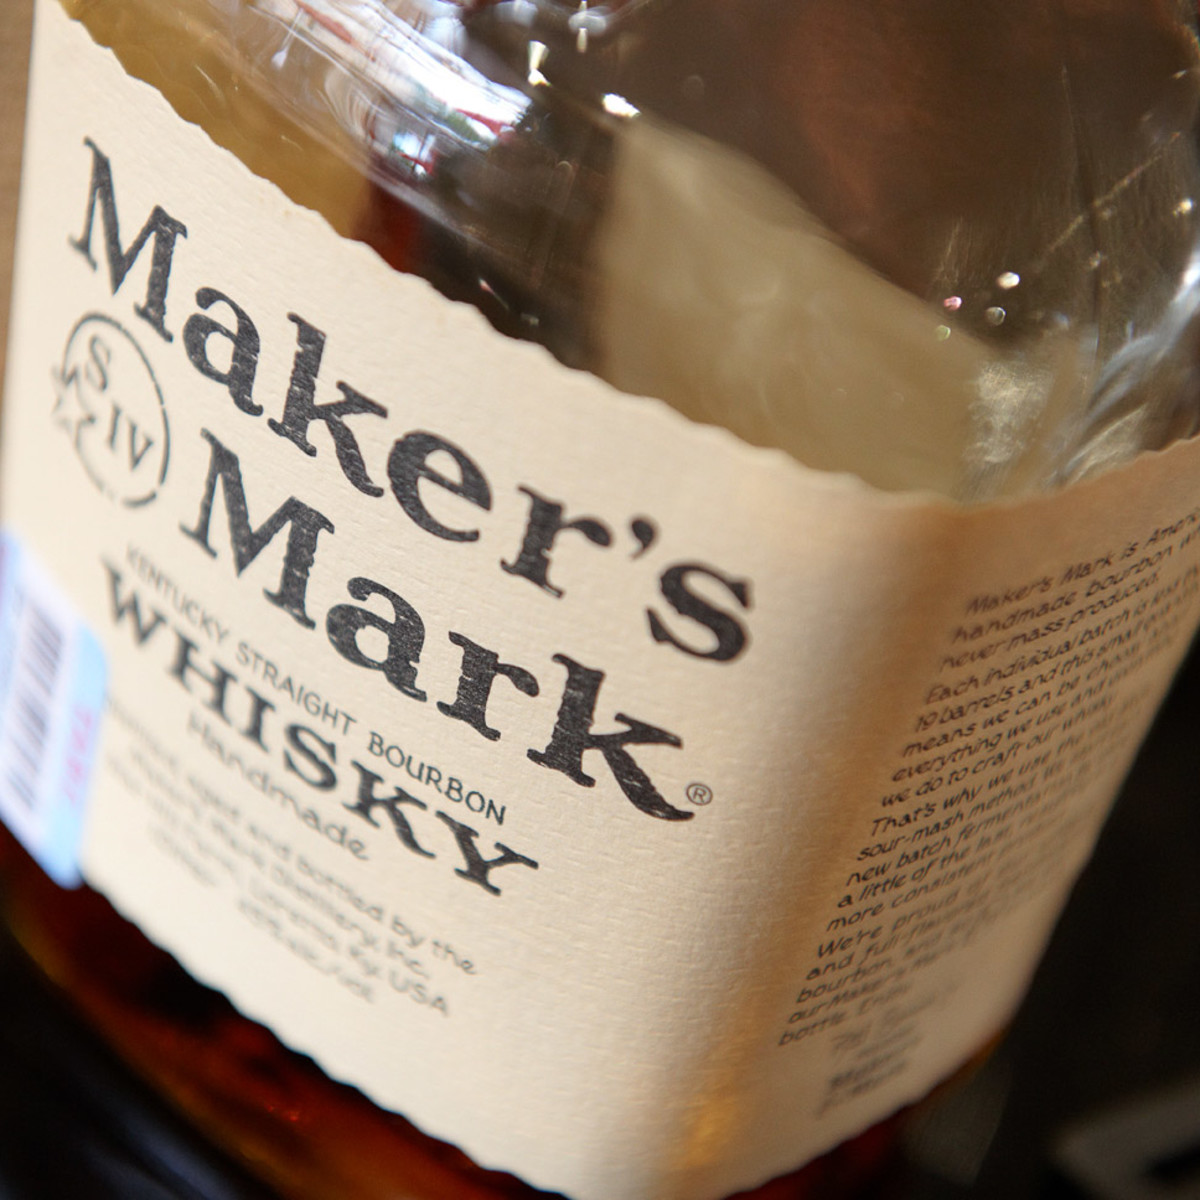 News_Marene Gustin_Maker's_whiskey_bourbon